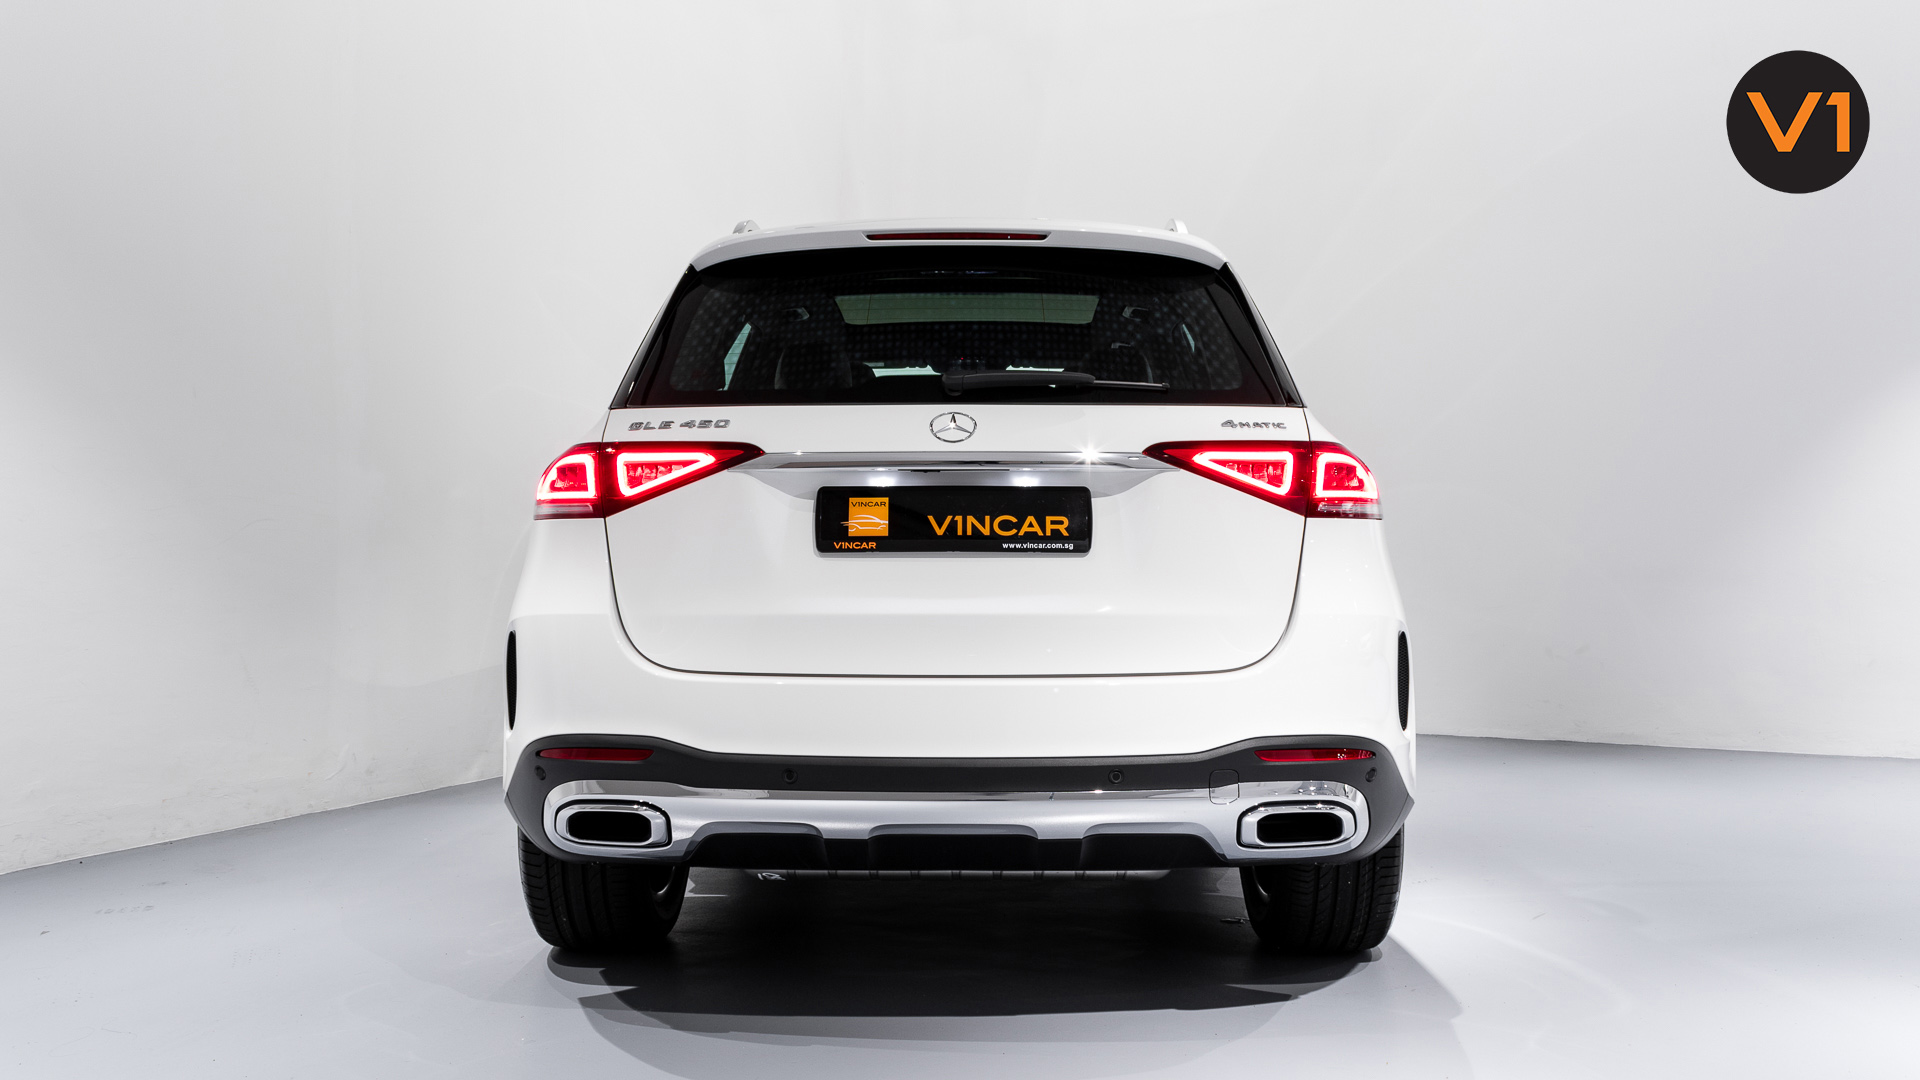 MERCEDES-BENZ GLE450 AMG 4MATIC LUXURY - Rear Direct